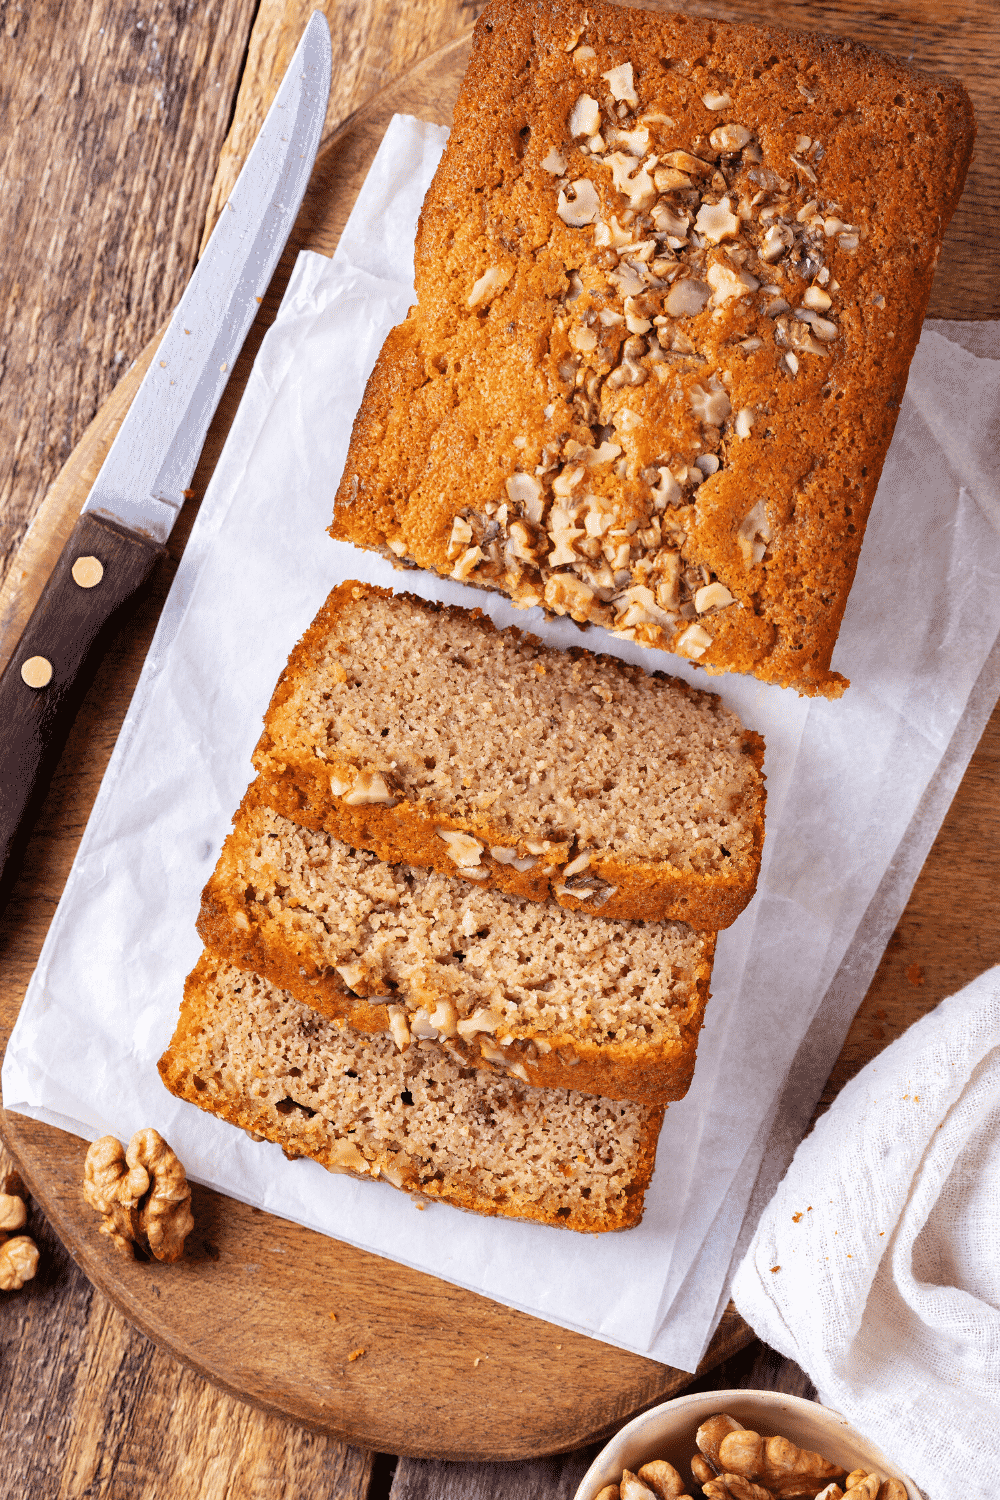 An overhead view of a banana bread loaf. Three pieces of banana bread are cut and are lying down.An overhead view of a banana bread loaf. Three pieces of banana bread are cut and overlapping one another in front of the loaf. A knife is next to the banana bread to the left.